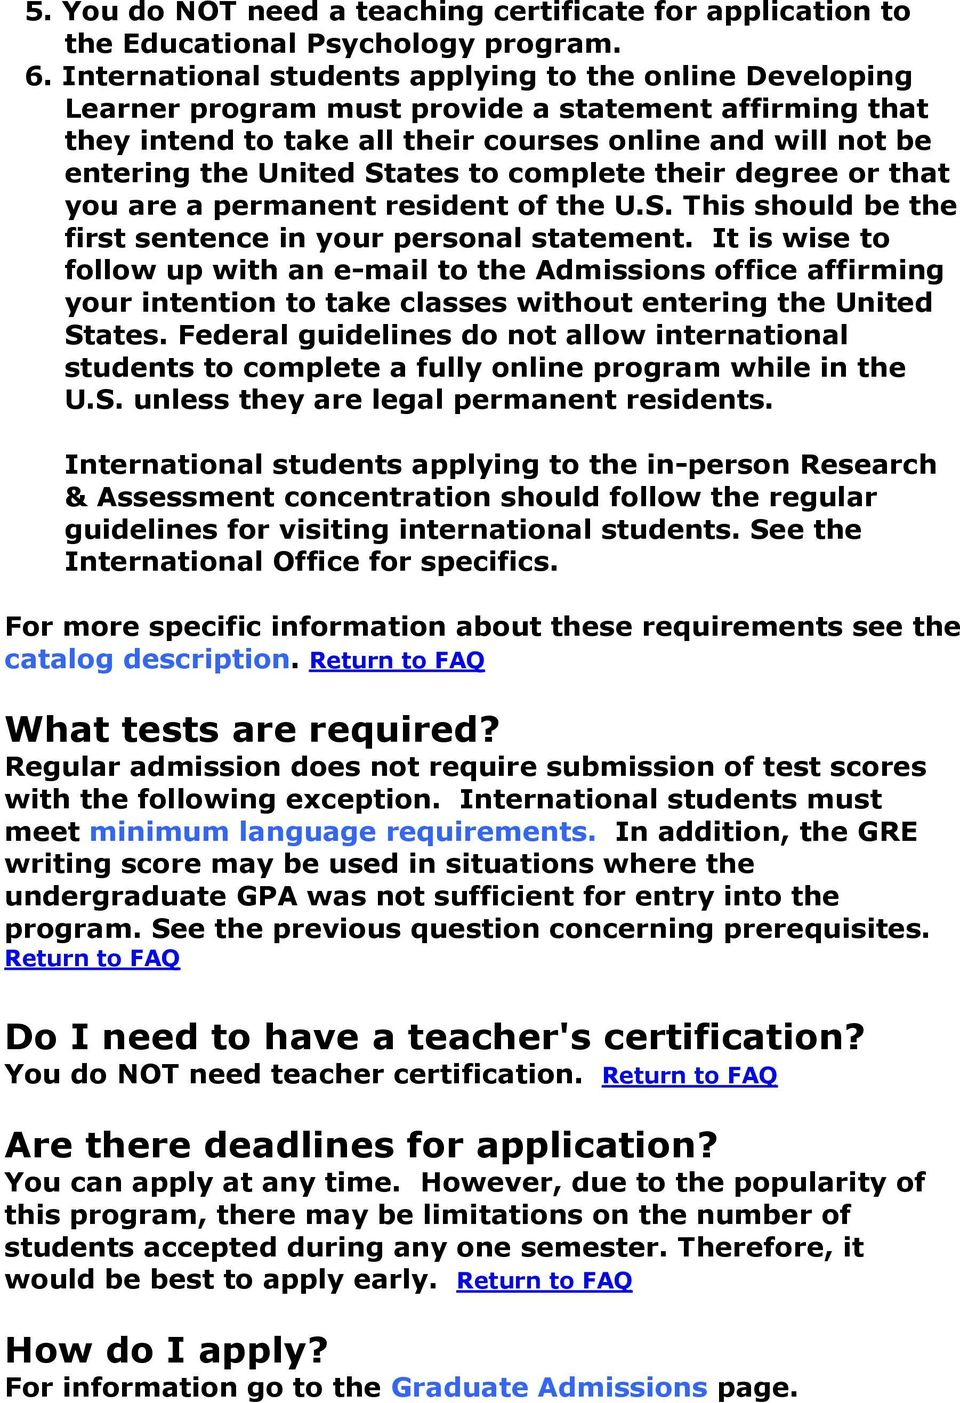 States to complete their degree or that you are a permanent resident of the U.S. This should be the first sentence in your personal statement.